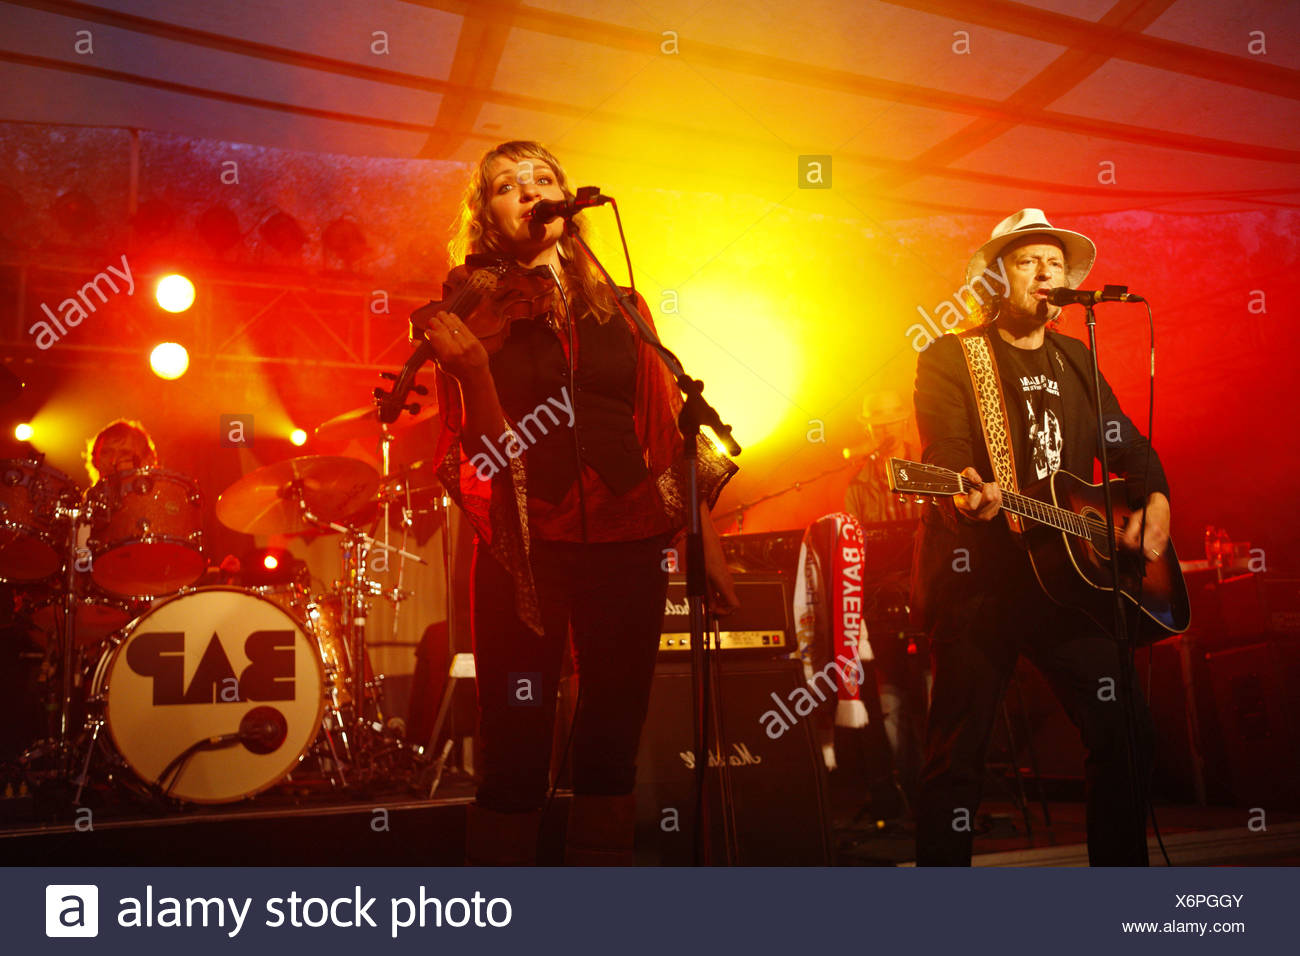 BAP, Cologne rock band, open air concert, Muehldorf am Inn, Bavaria, Germany Stock Photo